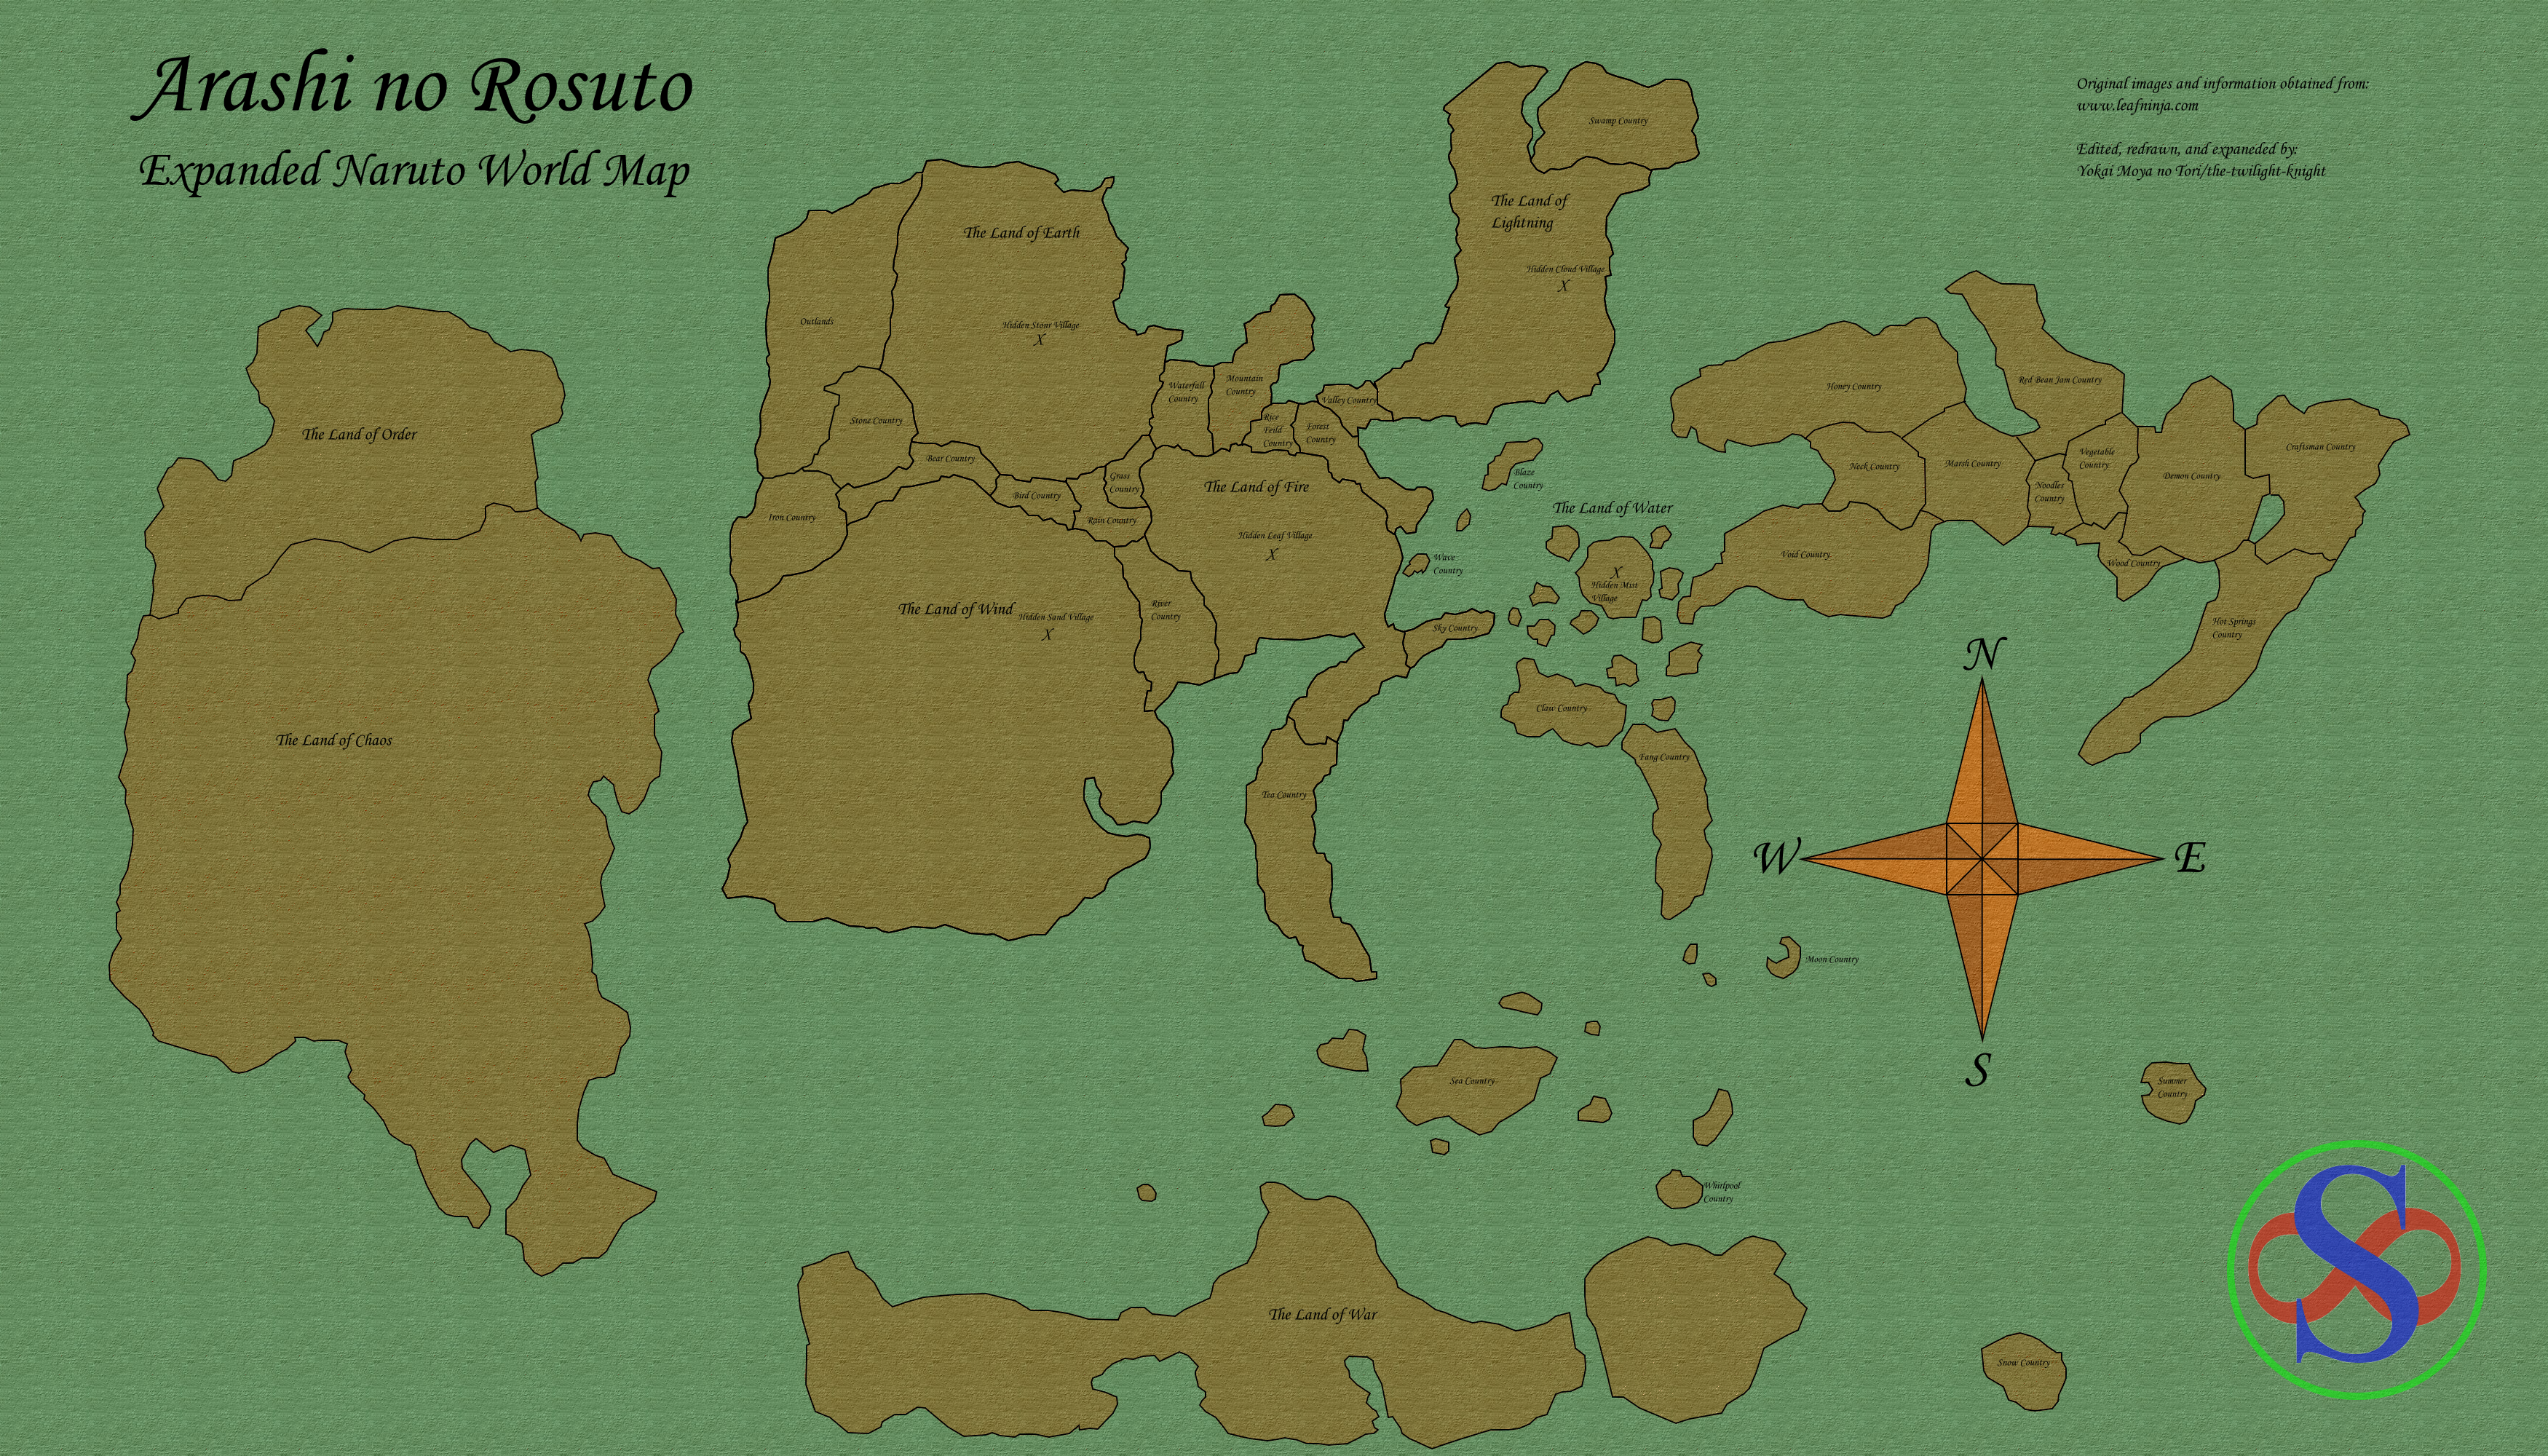 Elemental nations geographical map by xshadowrebirthx on deviantart naruto expanded world map by the twilight knight gumiabroncs Gallery